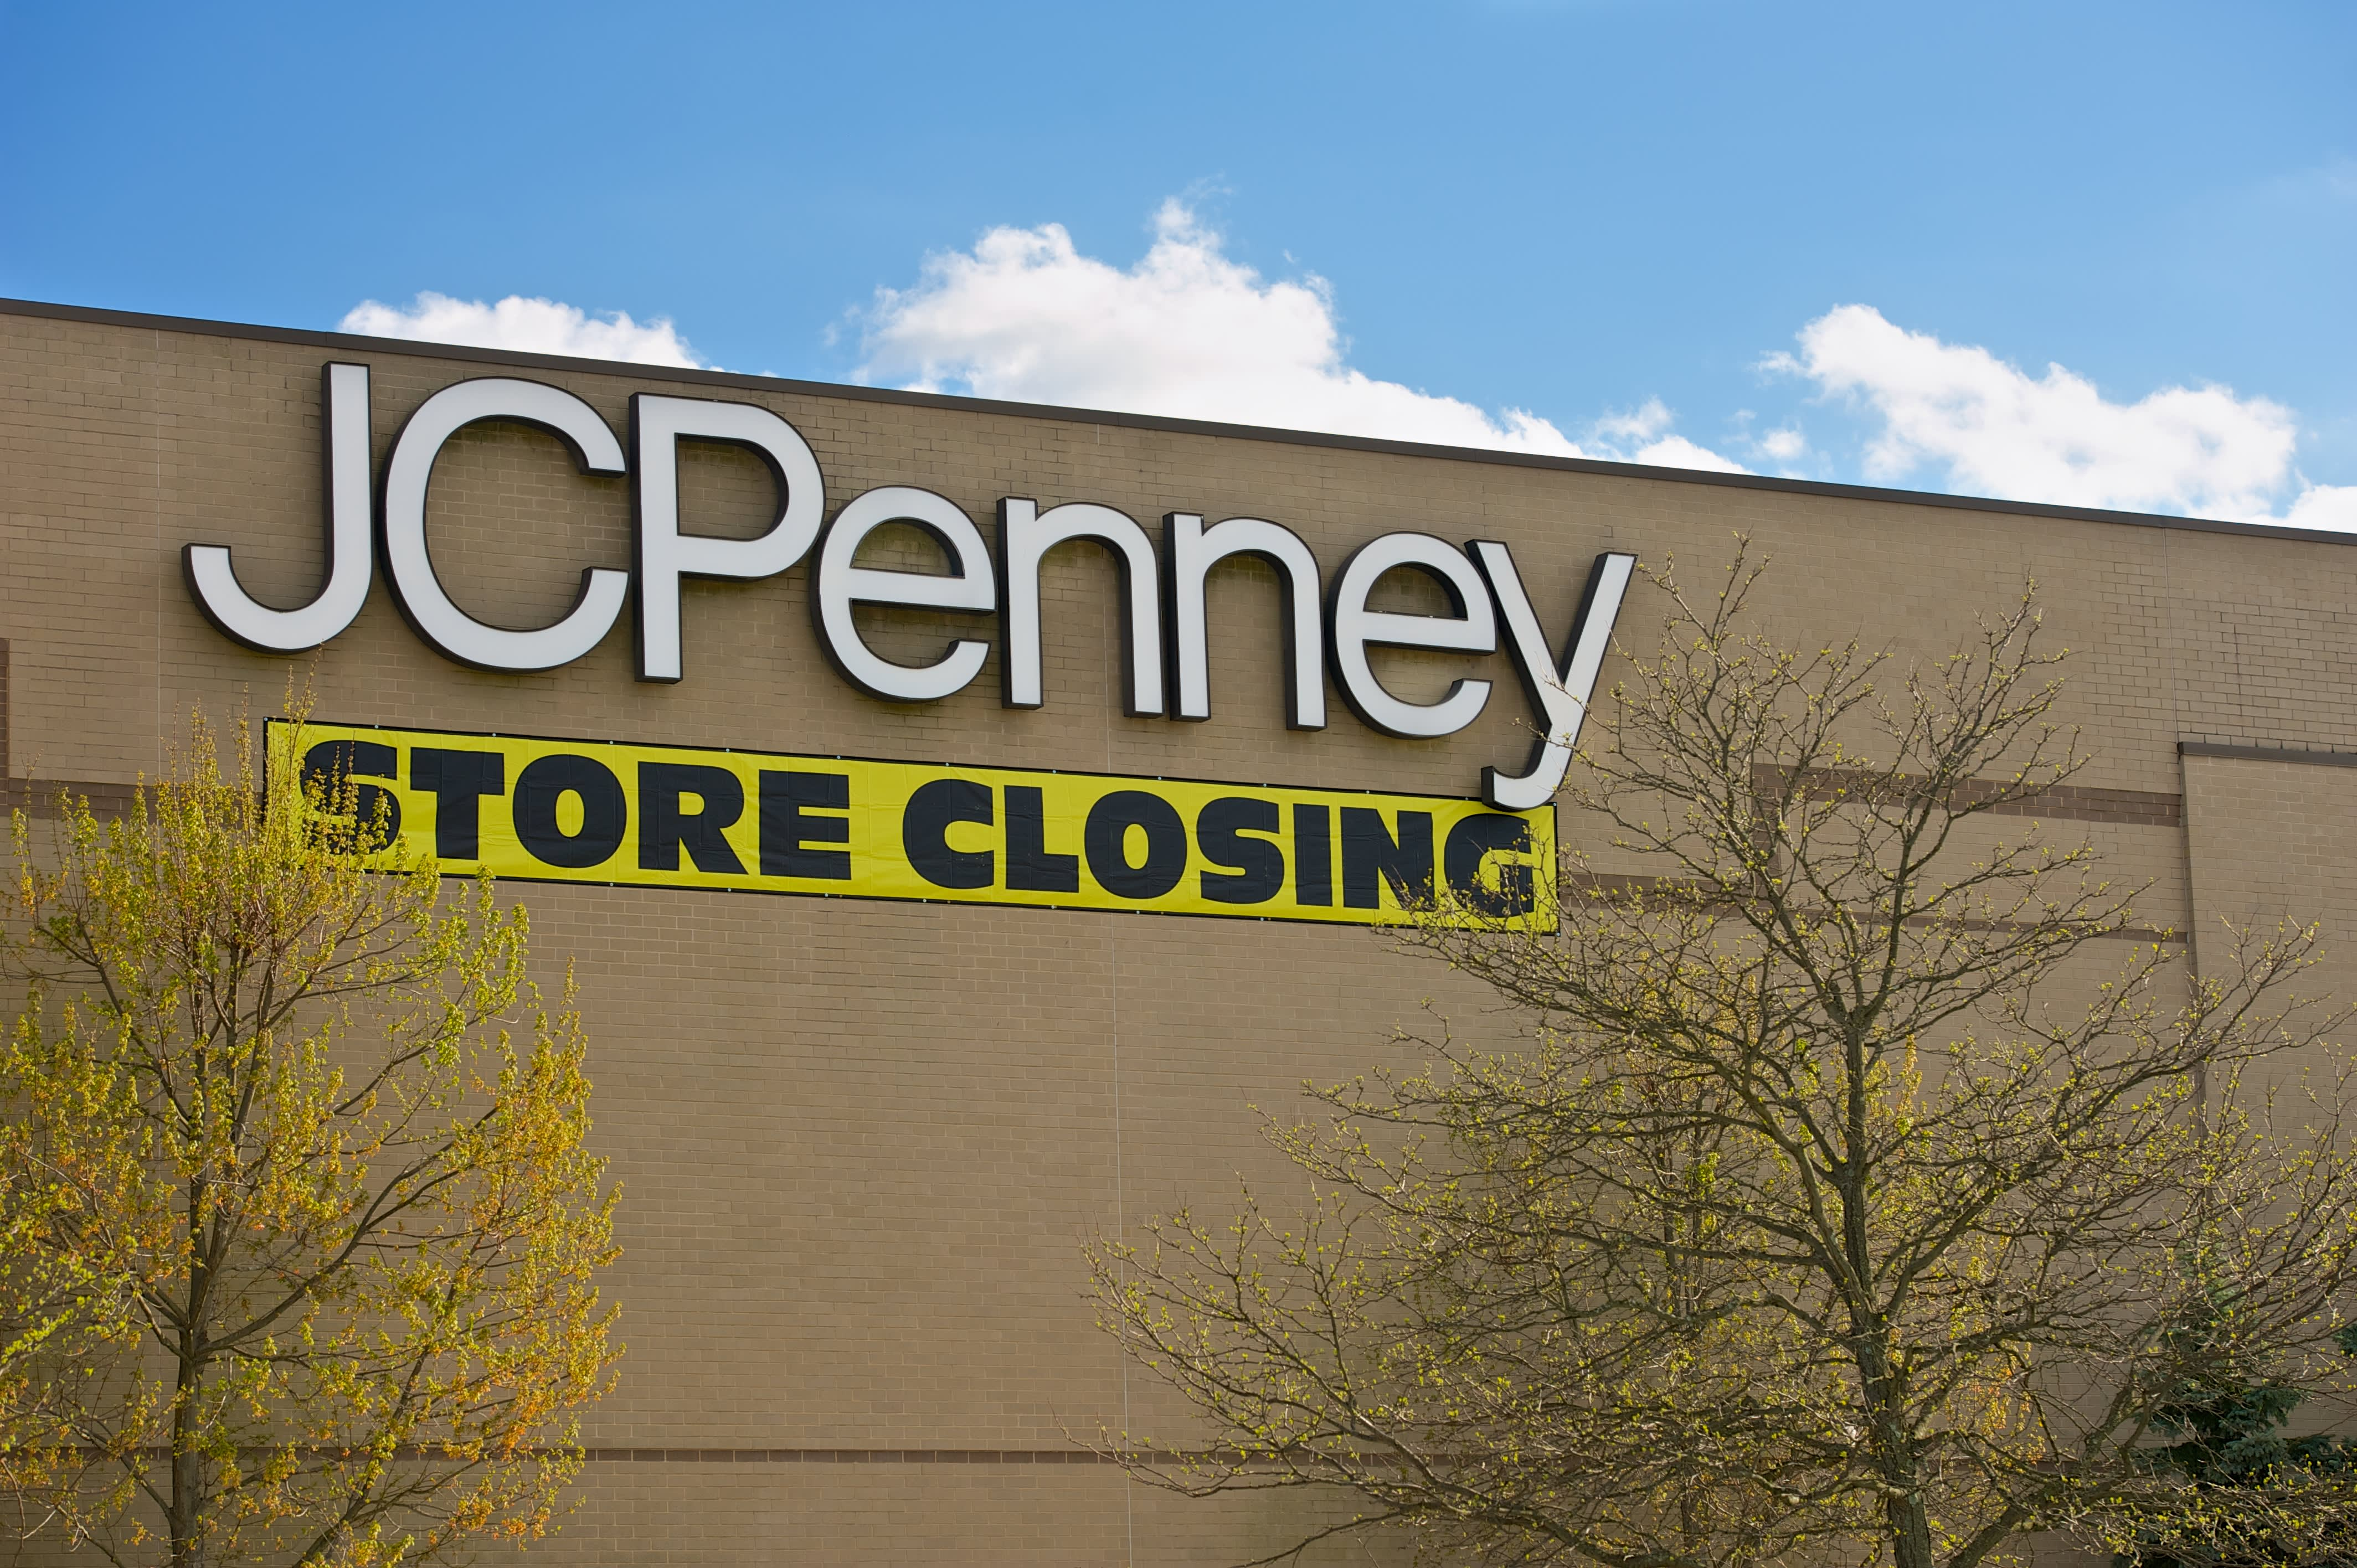 J C  Penney to close 3 stores by spring as part of ongoing